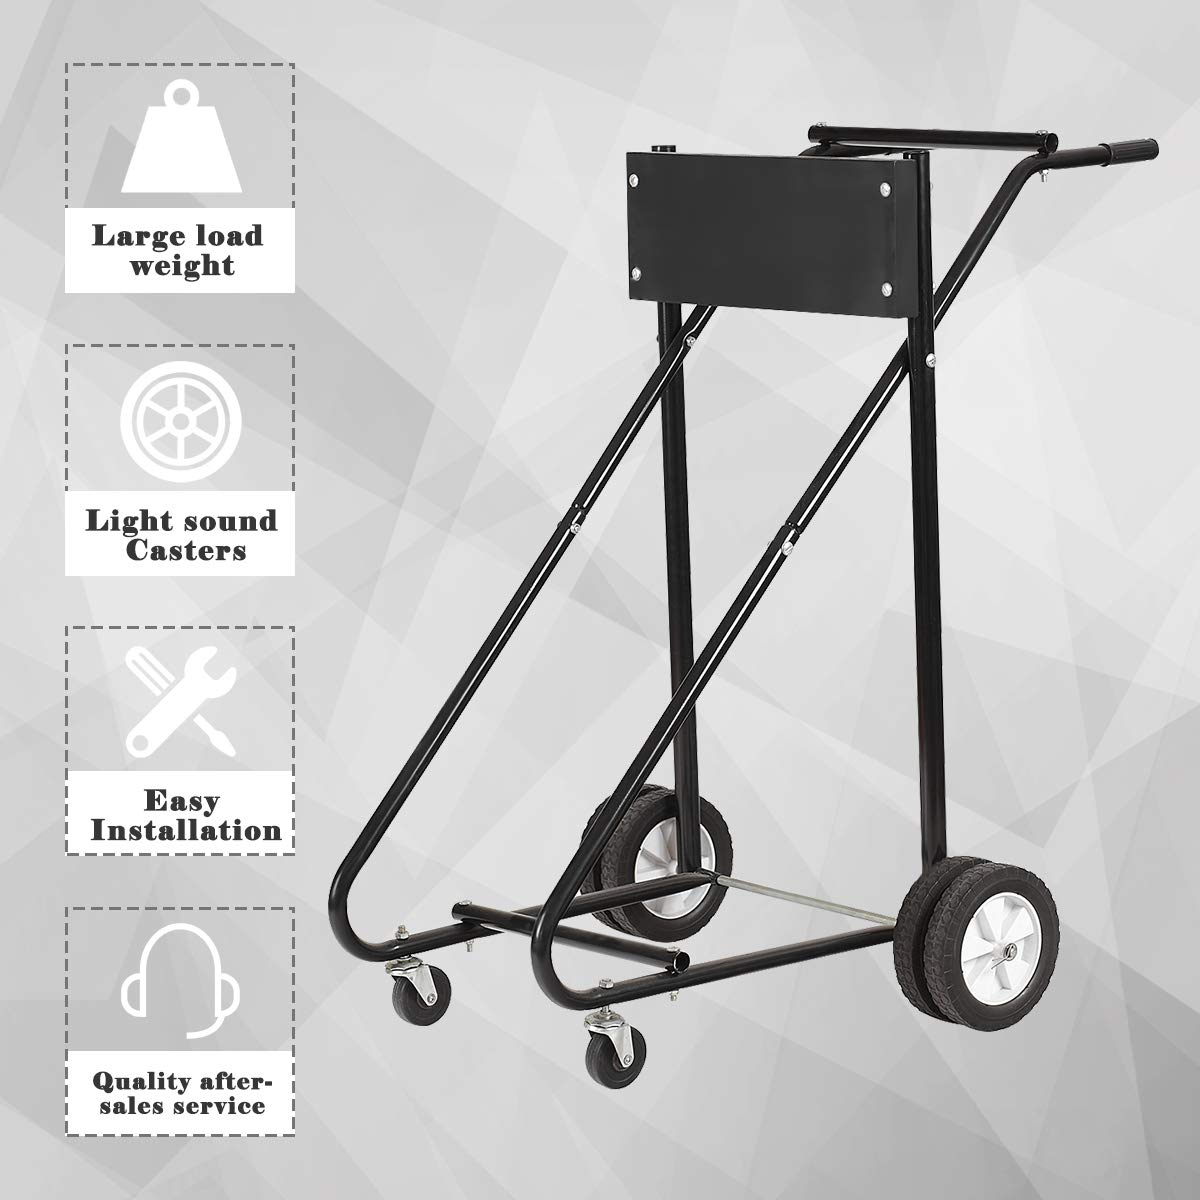 315 LBS Heavy Duty Pro Outboard Engine Carrier Cart Dolly Storage Black Goplus Boat Motor Stand Black